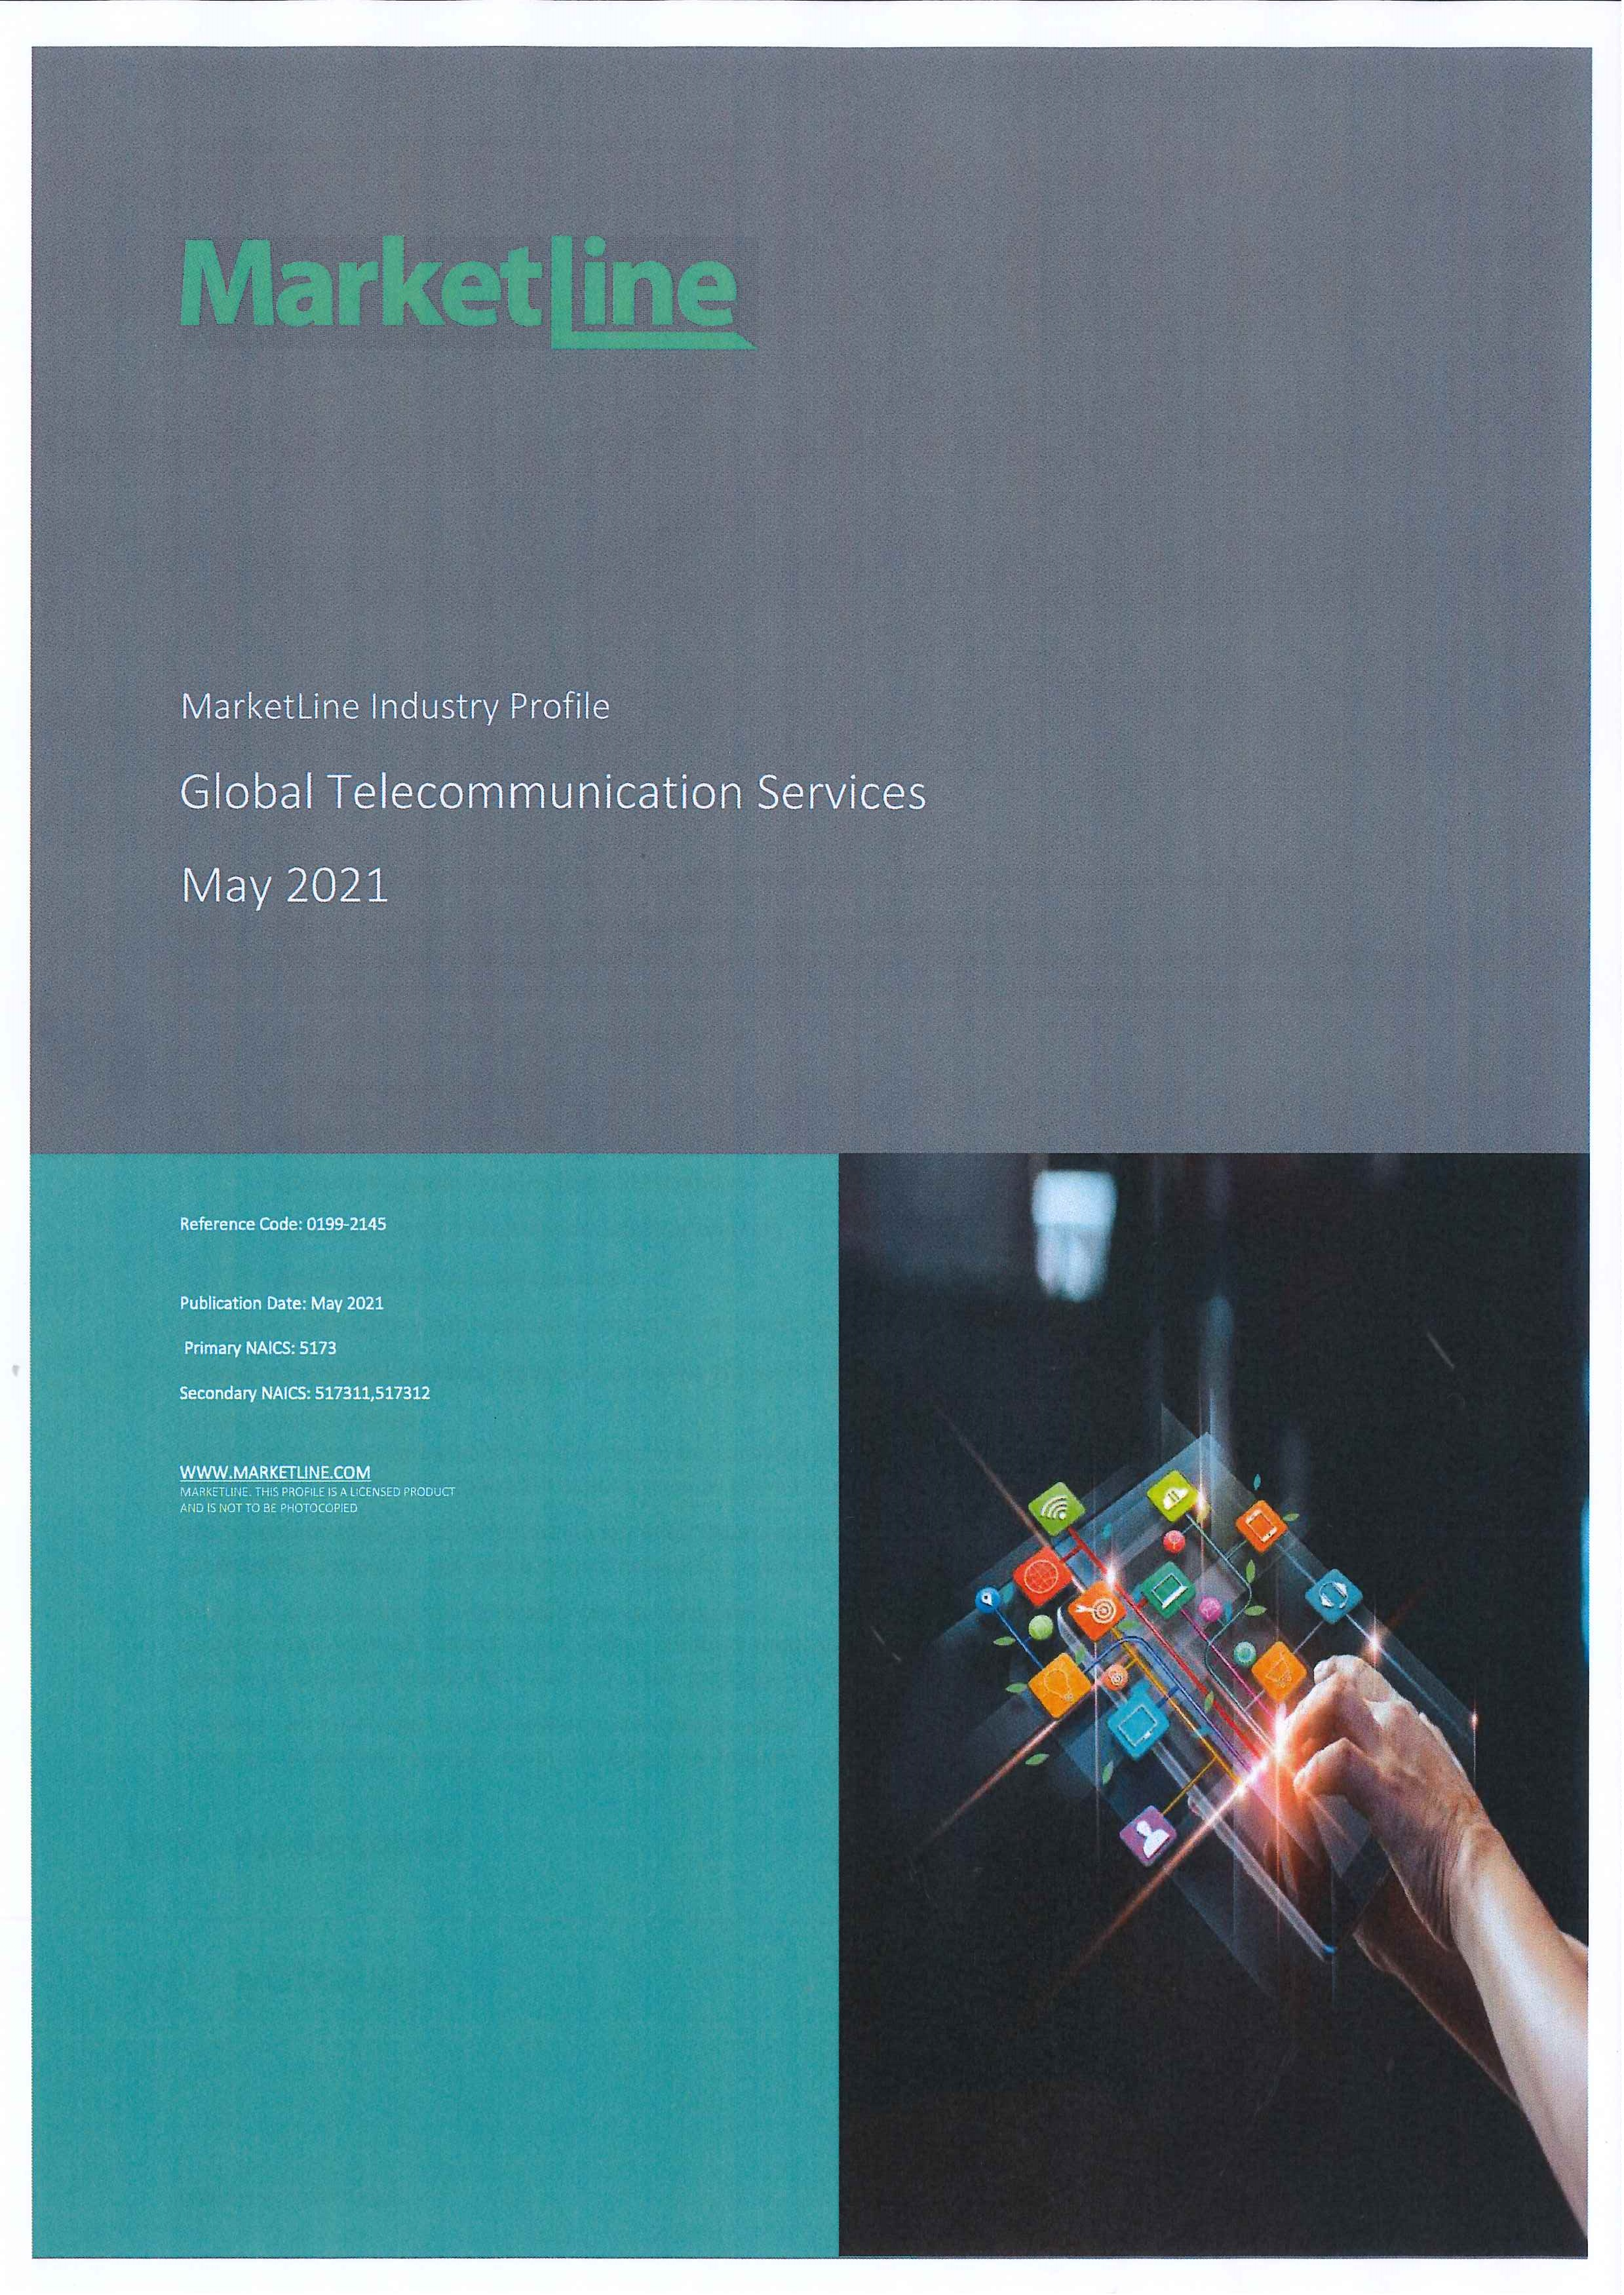 Global Telecommunication Services [e-book]:Market Summary, Competitive Analysis and Forecast to 2025